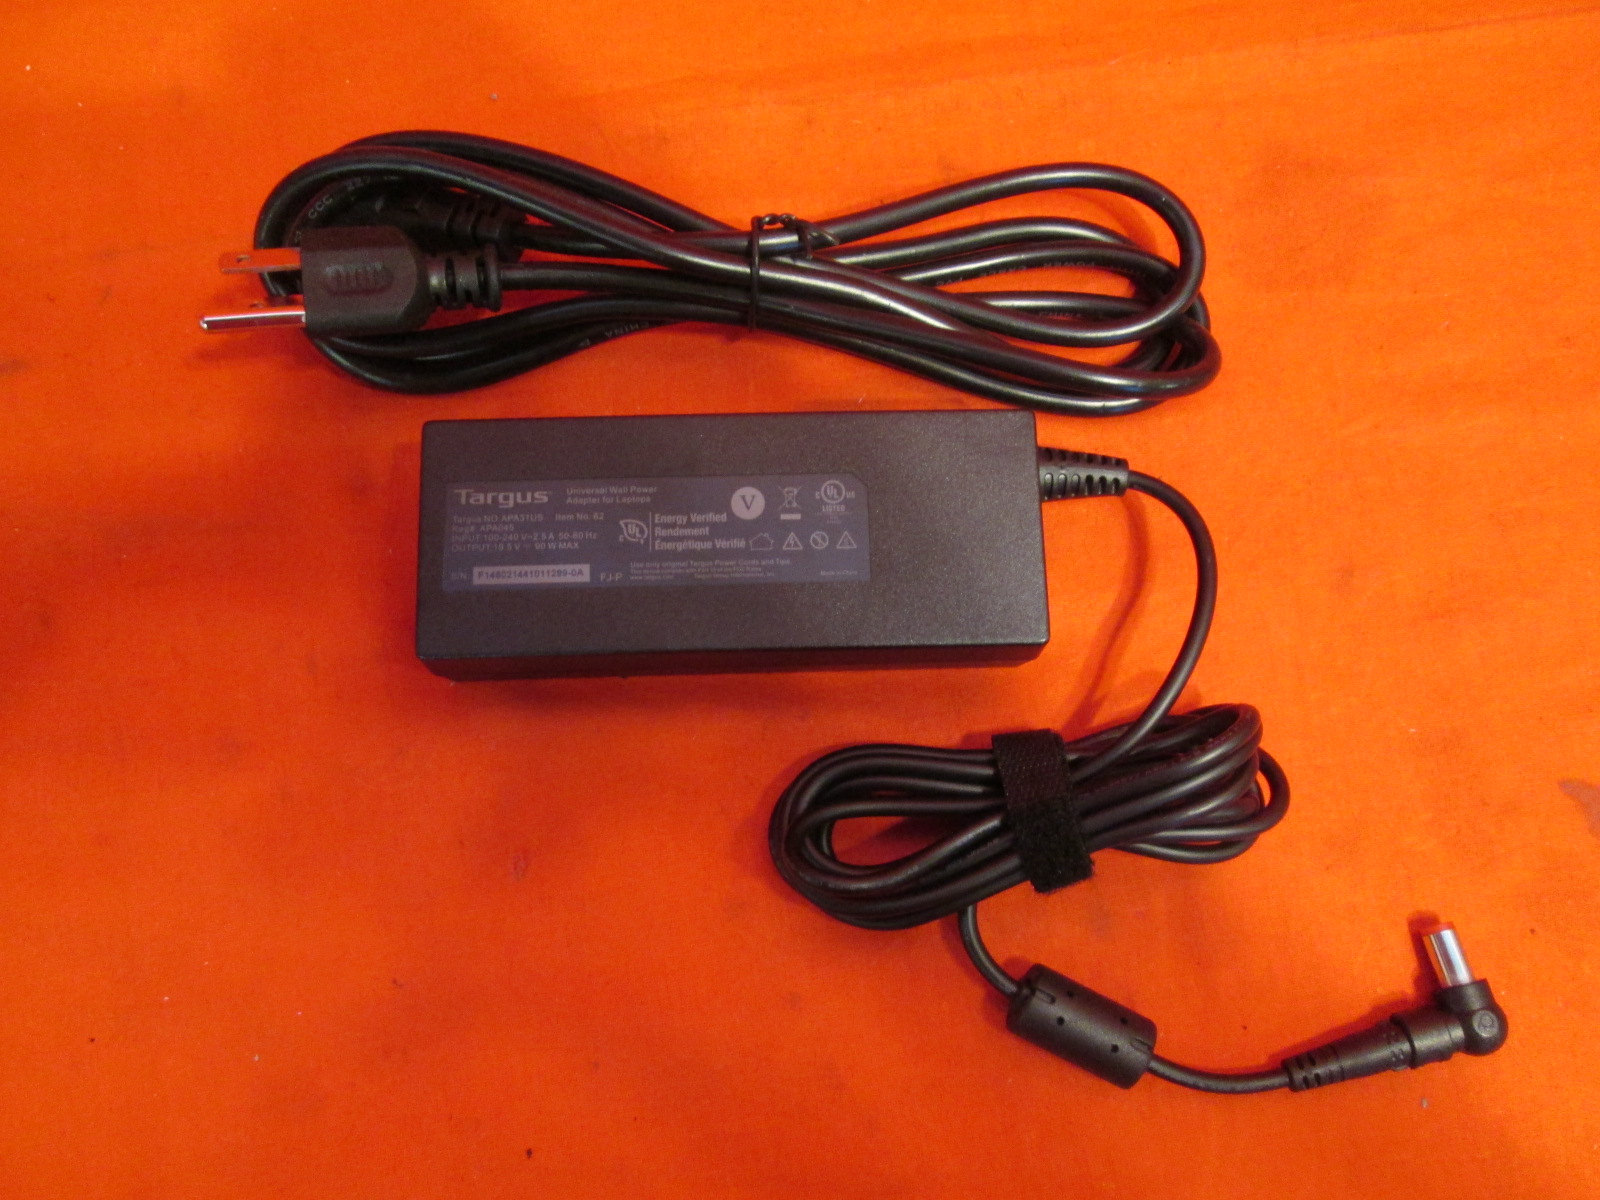 Targus 90 Watt Ac Laptop Charger With No Attachments